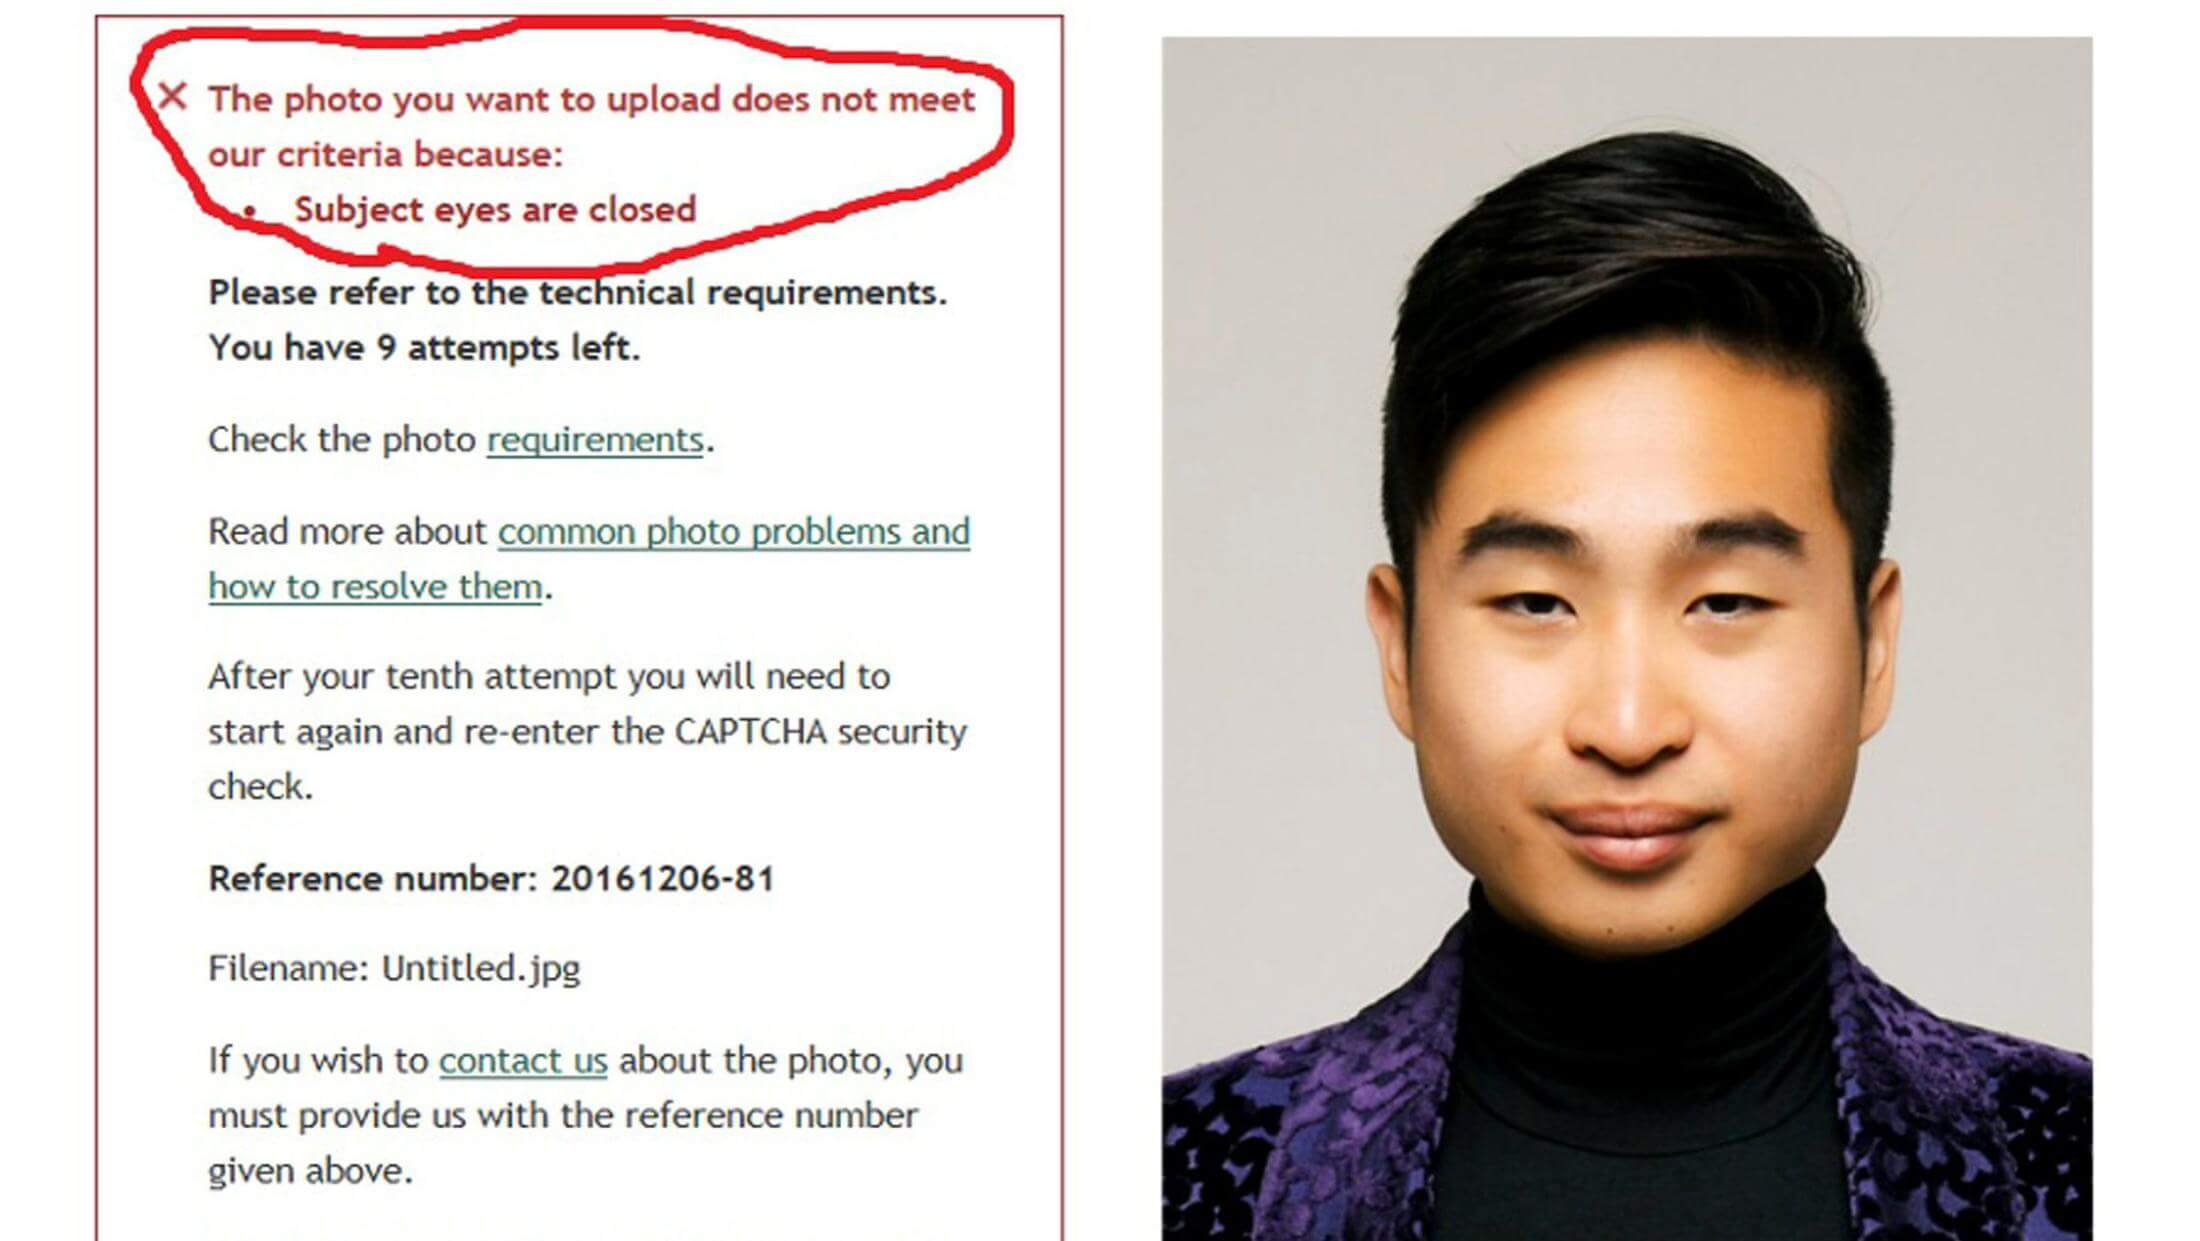 """algoritmic photo checker gave East Asian man """"subject eyes are closed"""" error message"""